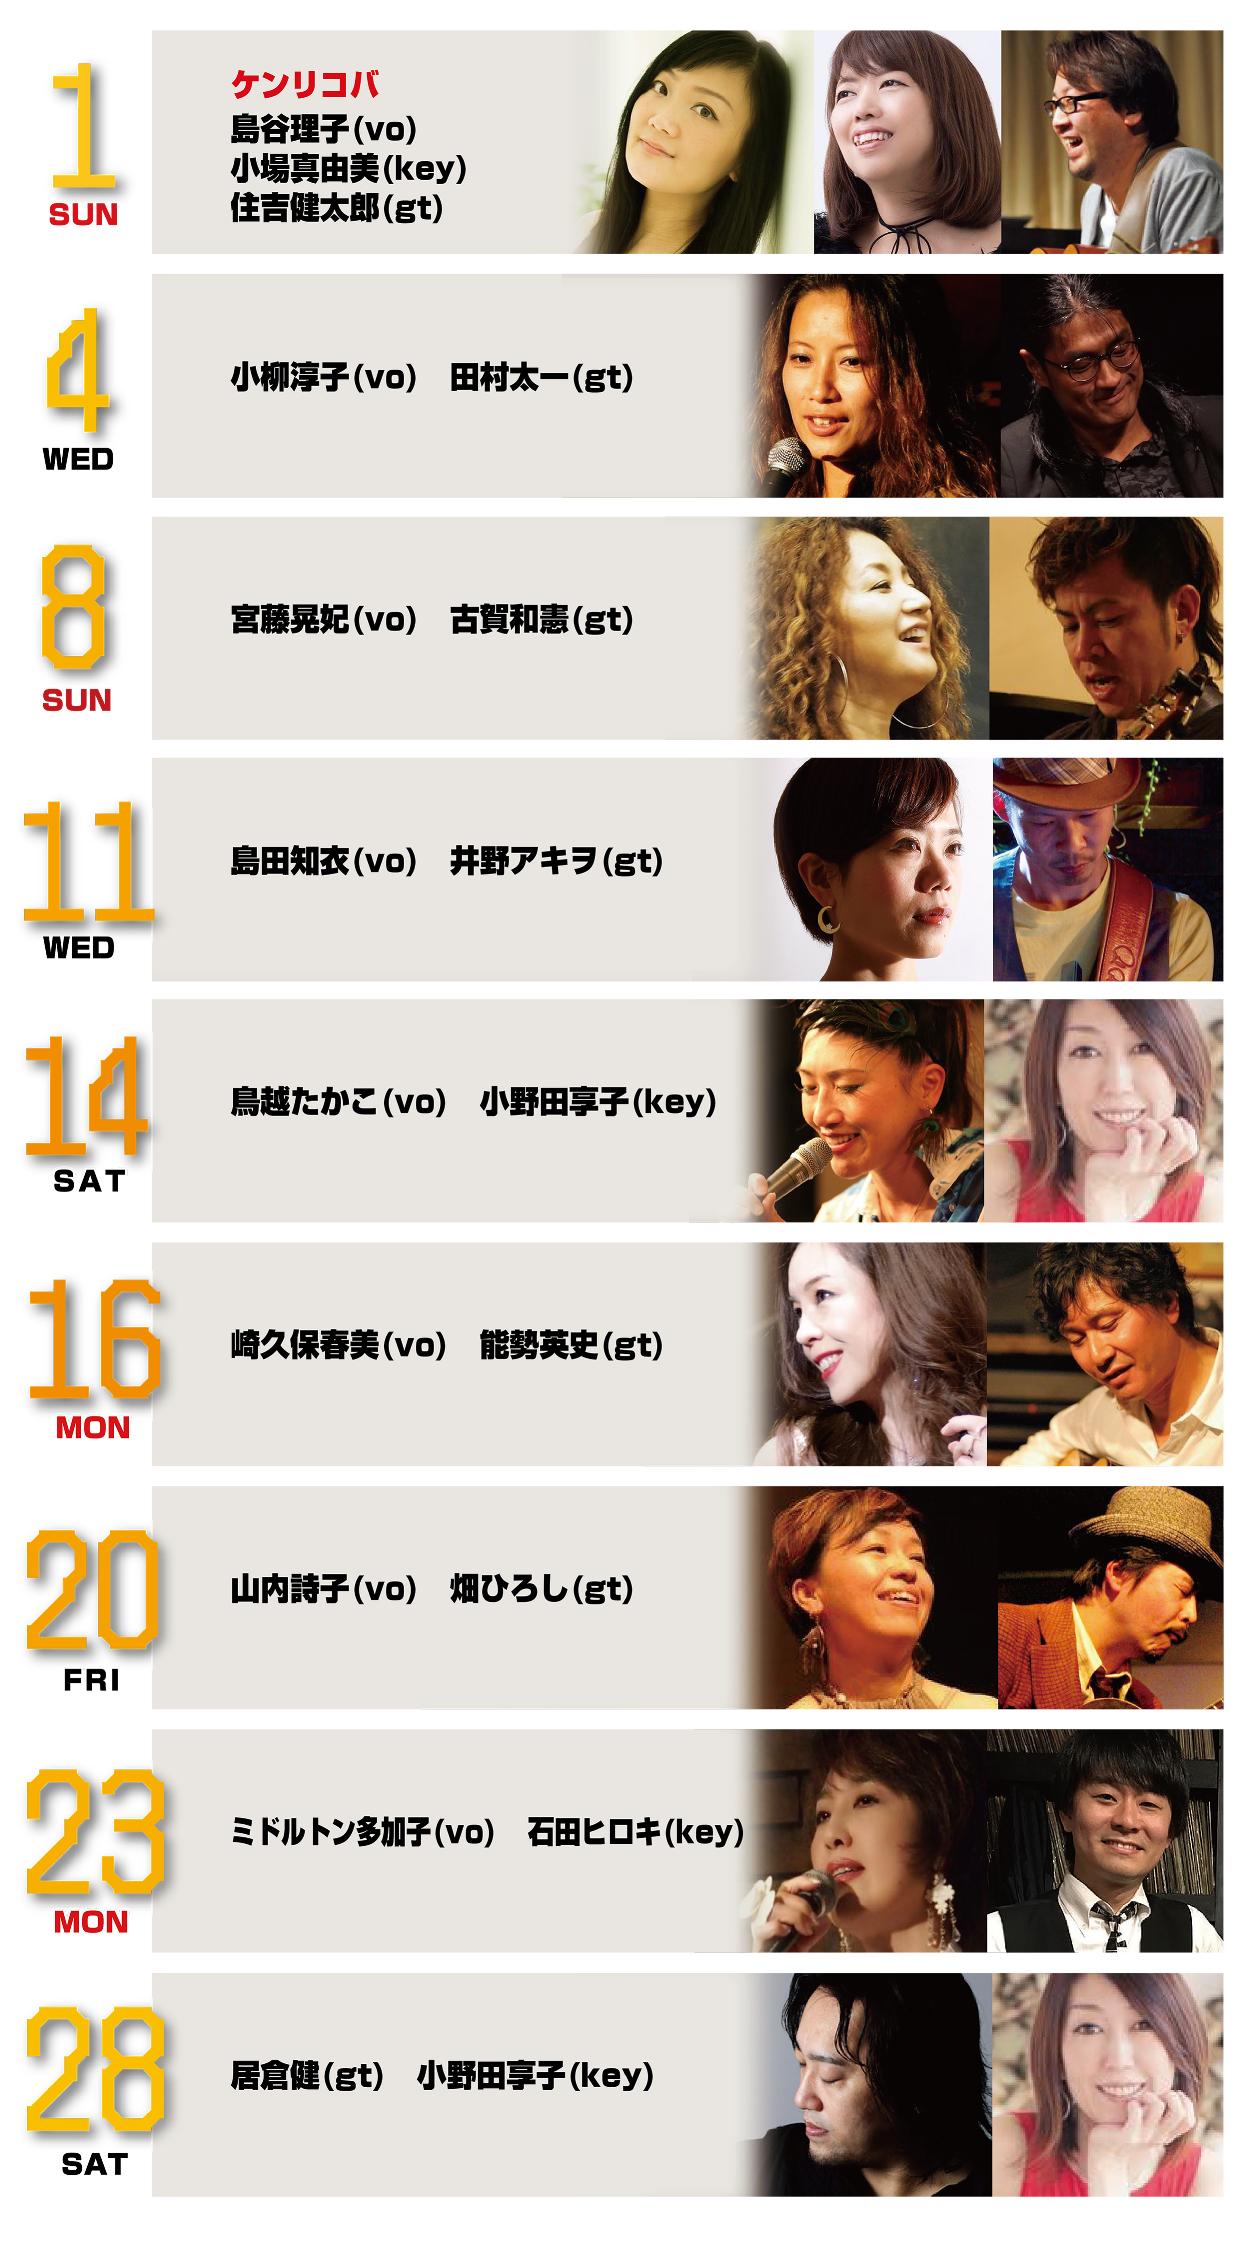 http://kitano-pickup.com/php/images/09.png